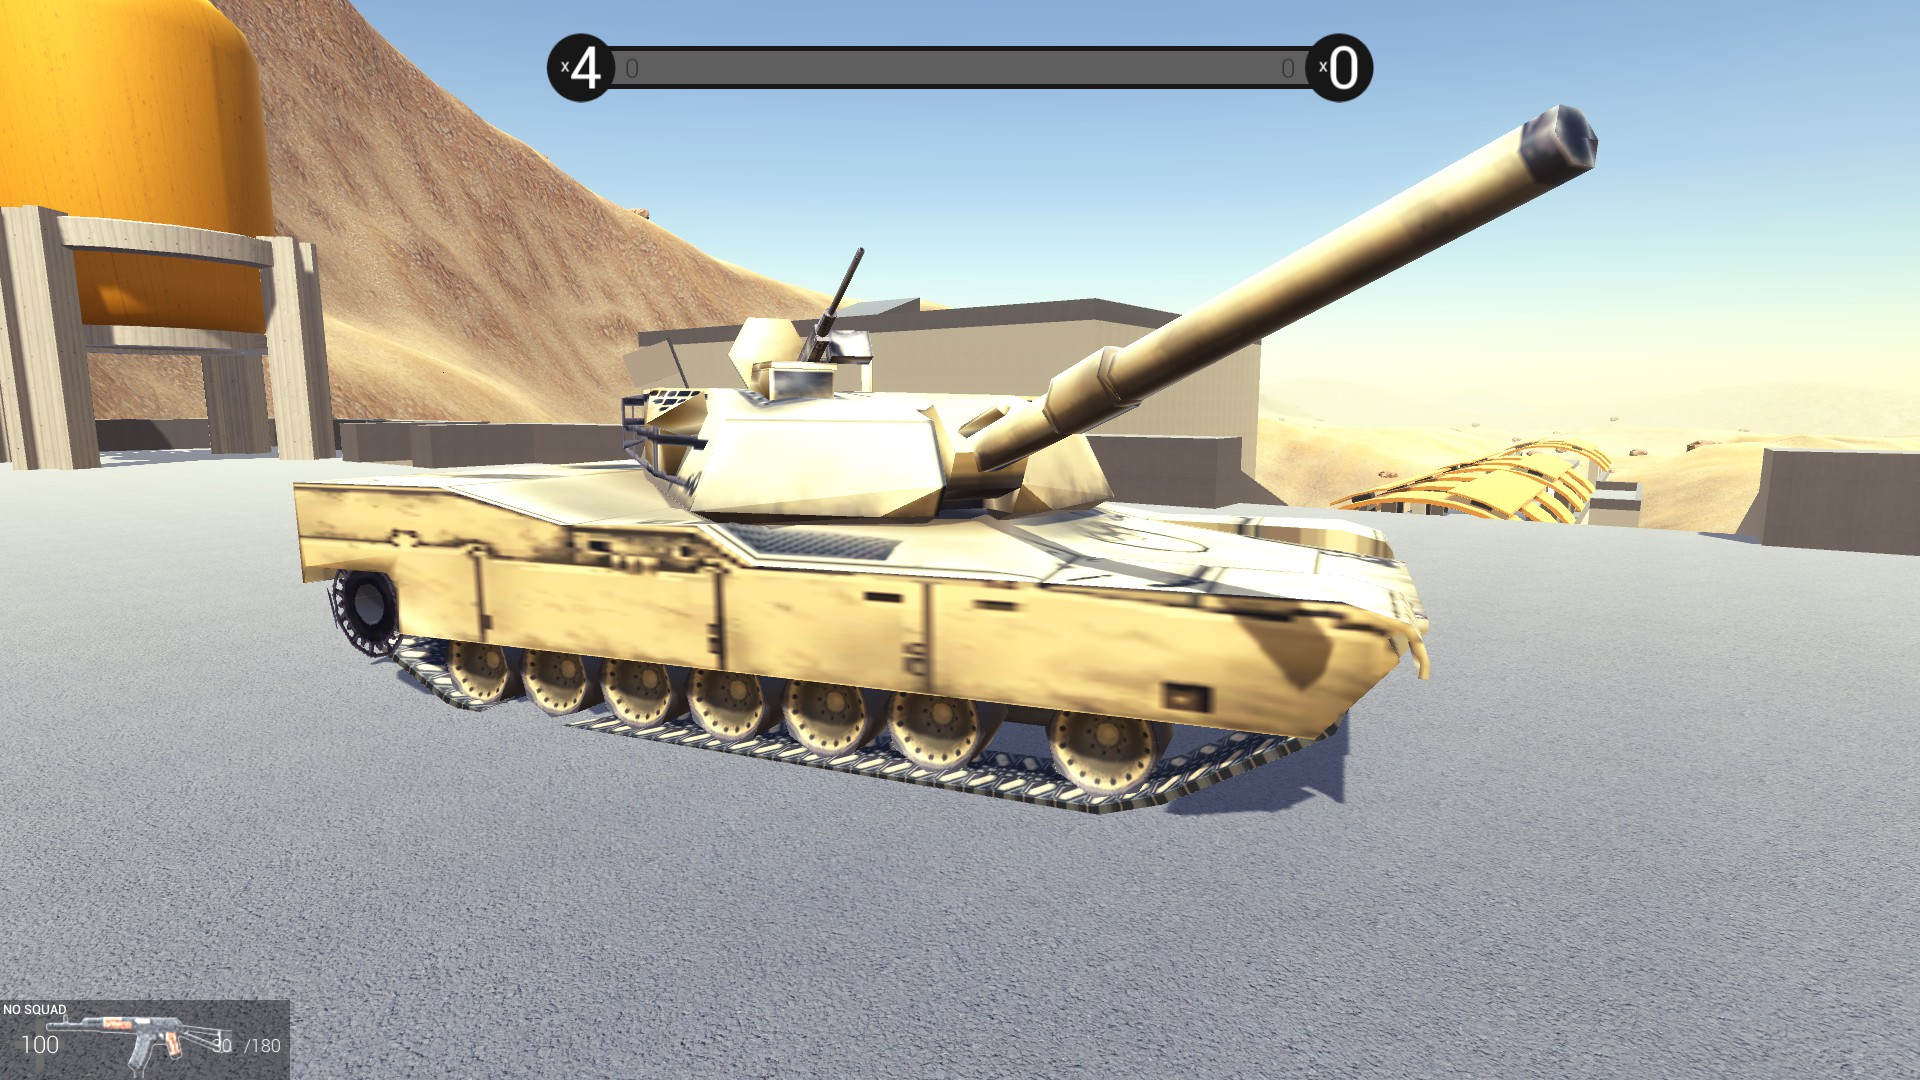 M1A1 Abrams image - Conflict: Desert Storm II Remastered mod for